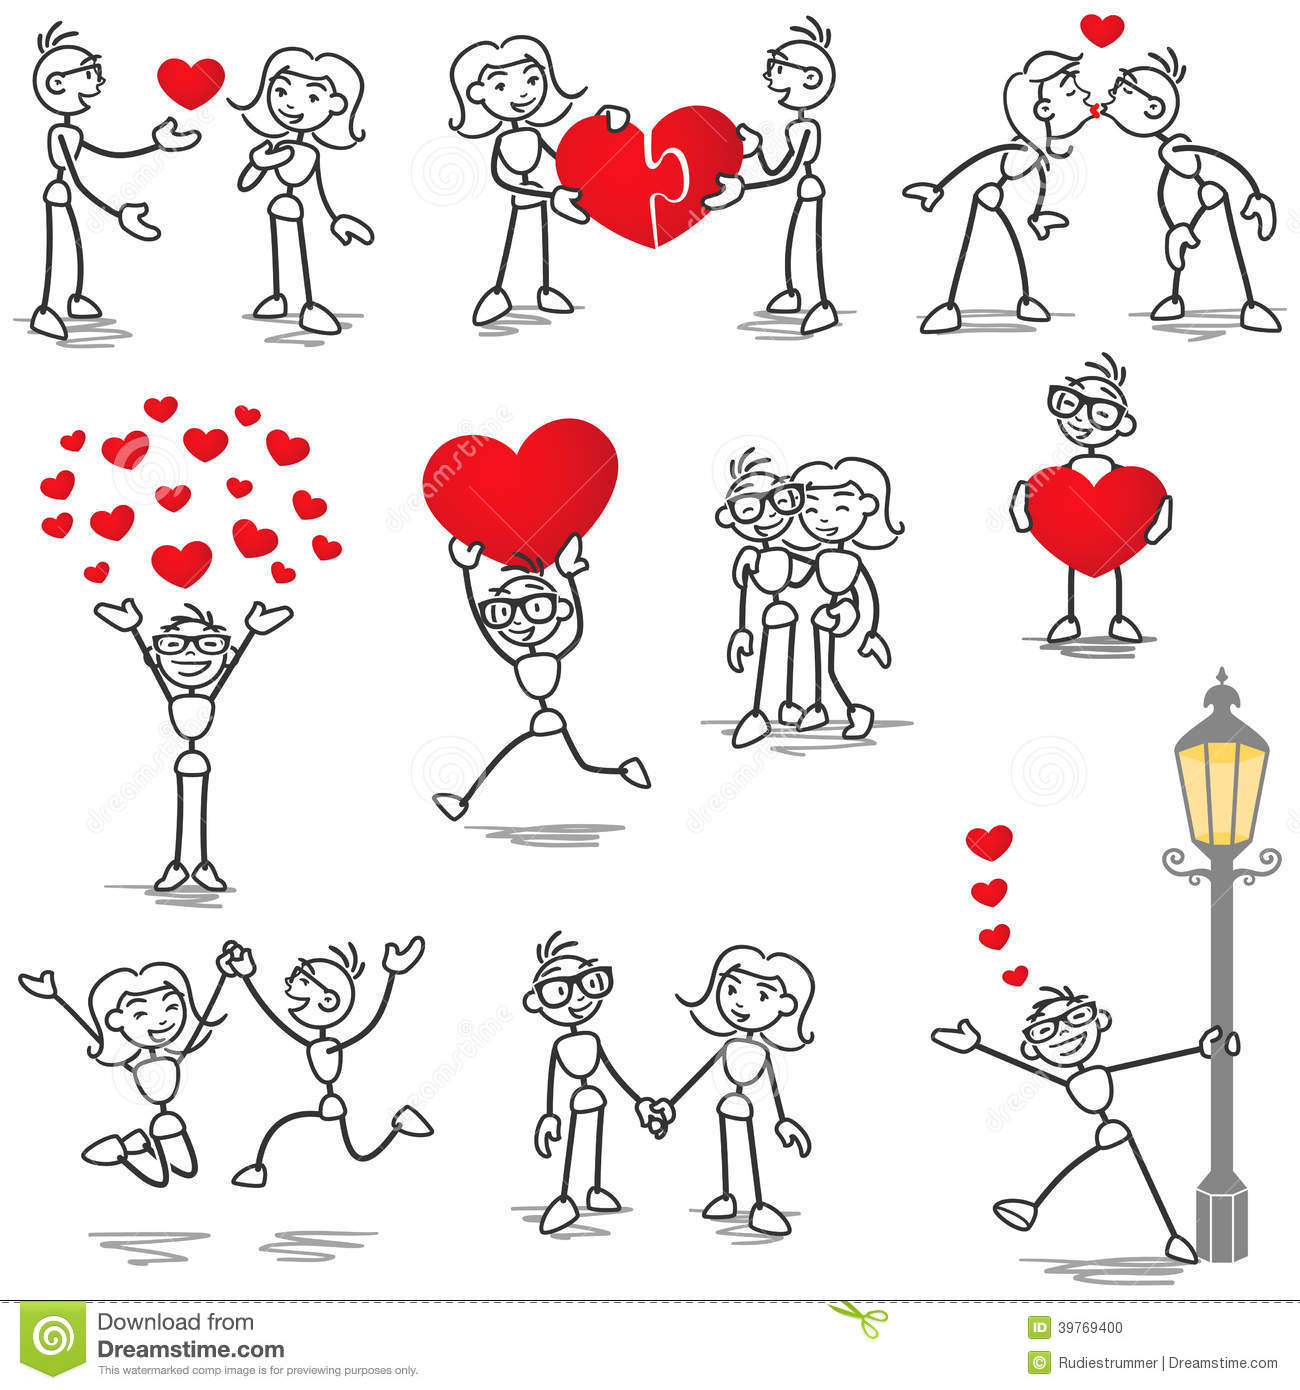 Stickman Stick Figure In Love Couple Heart Kiss Stock Vector